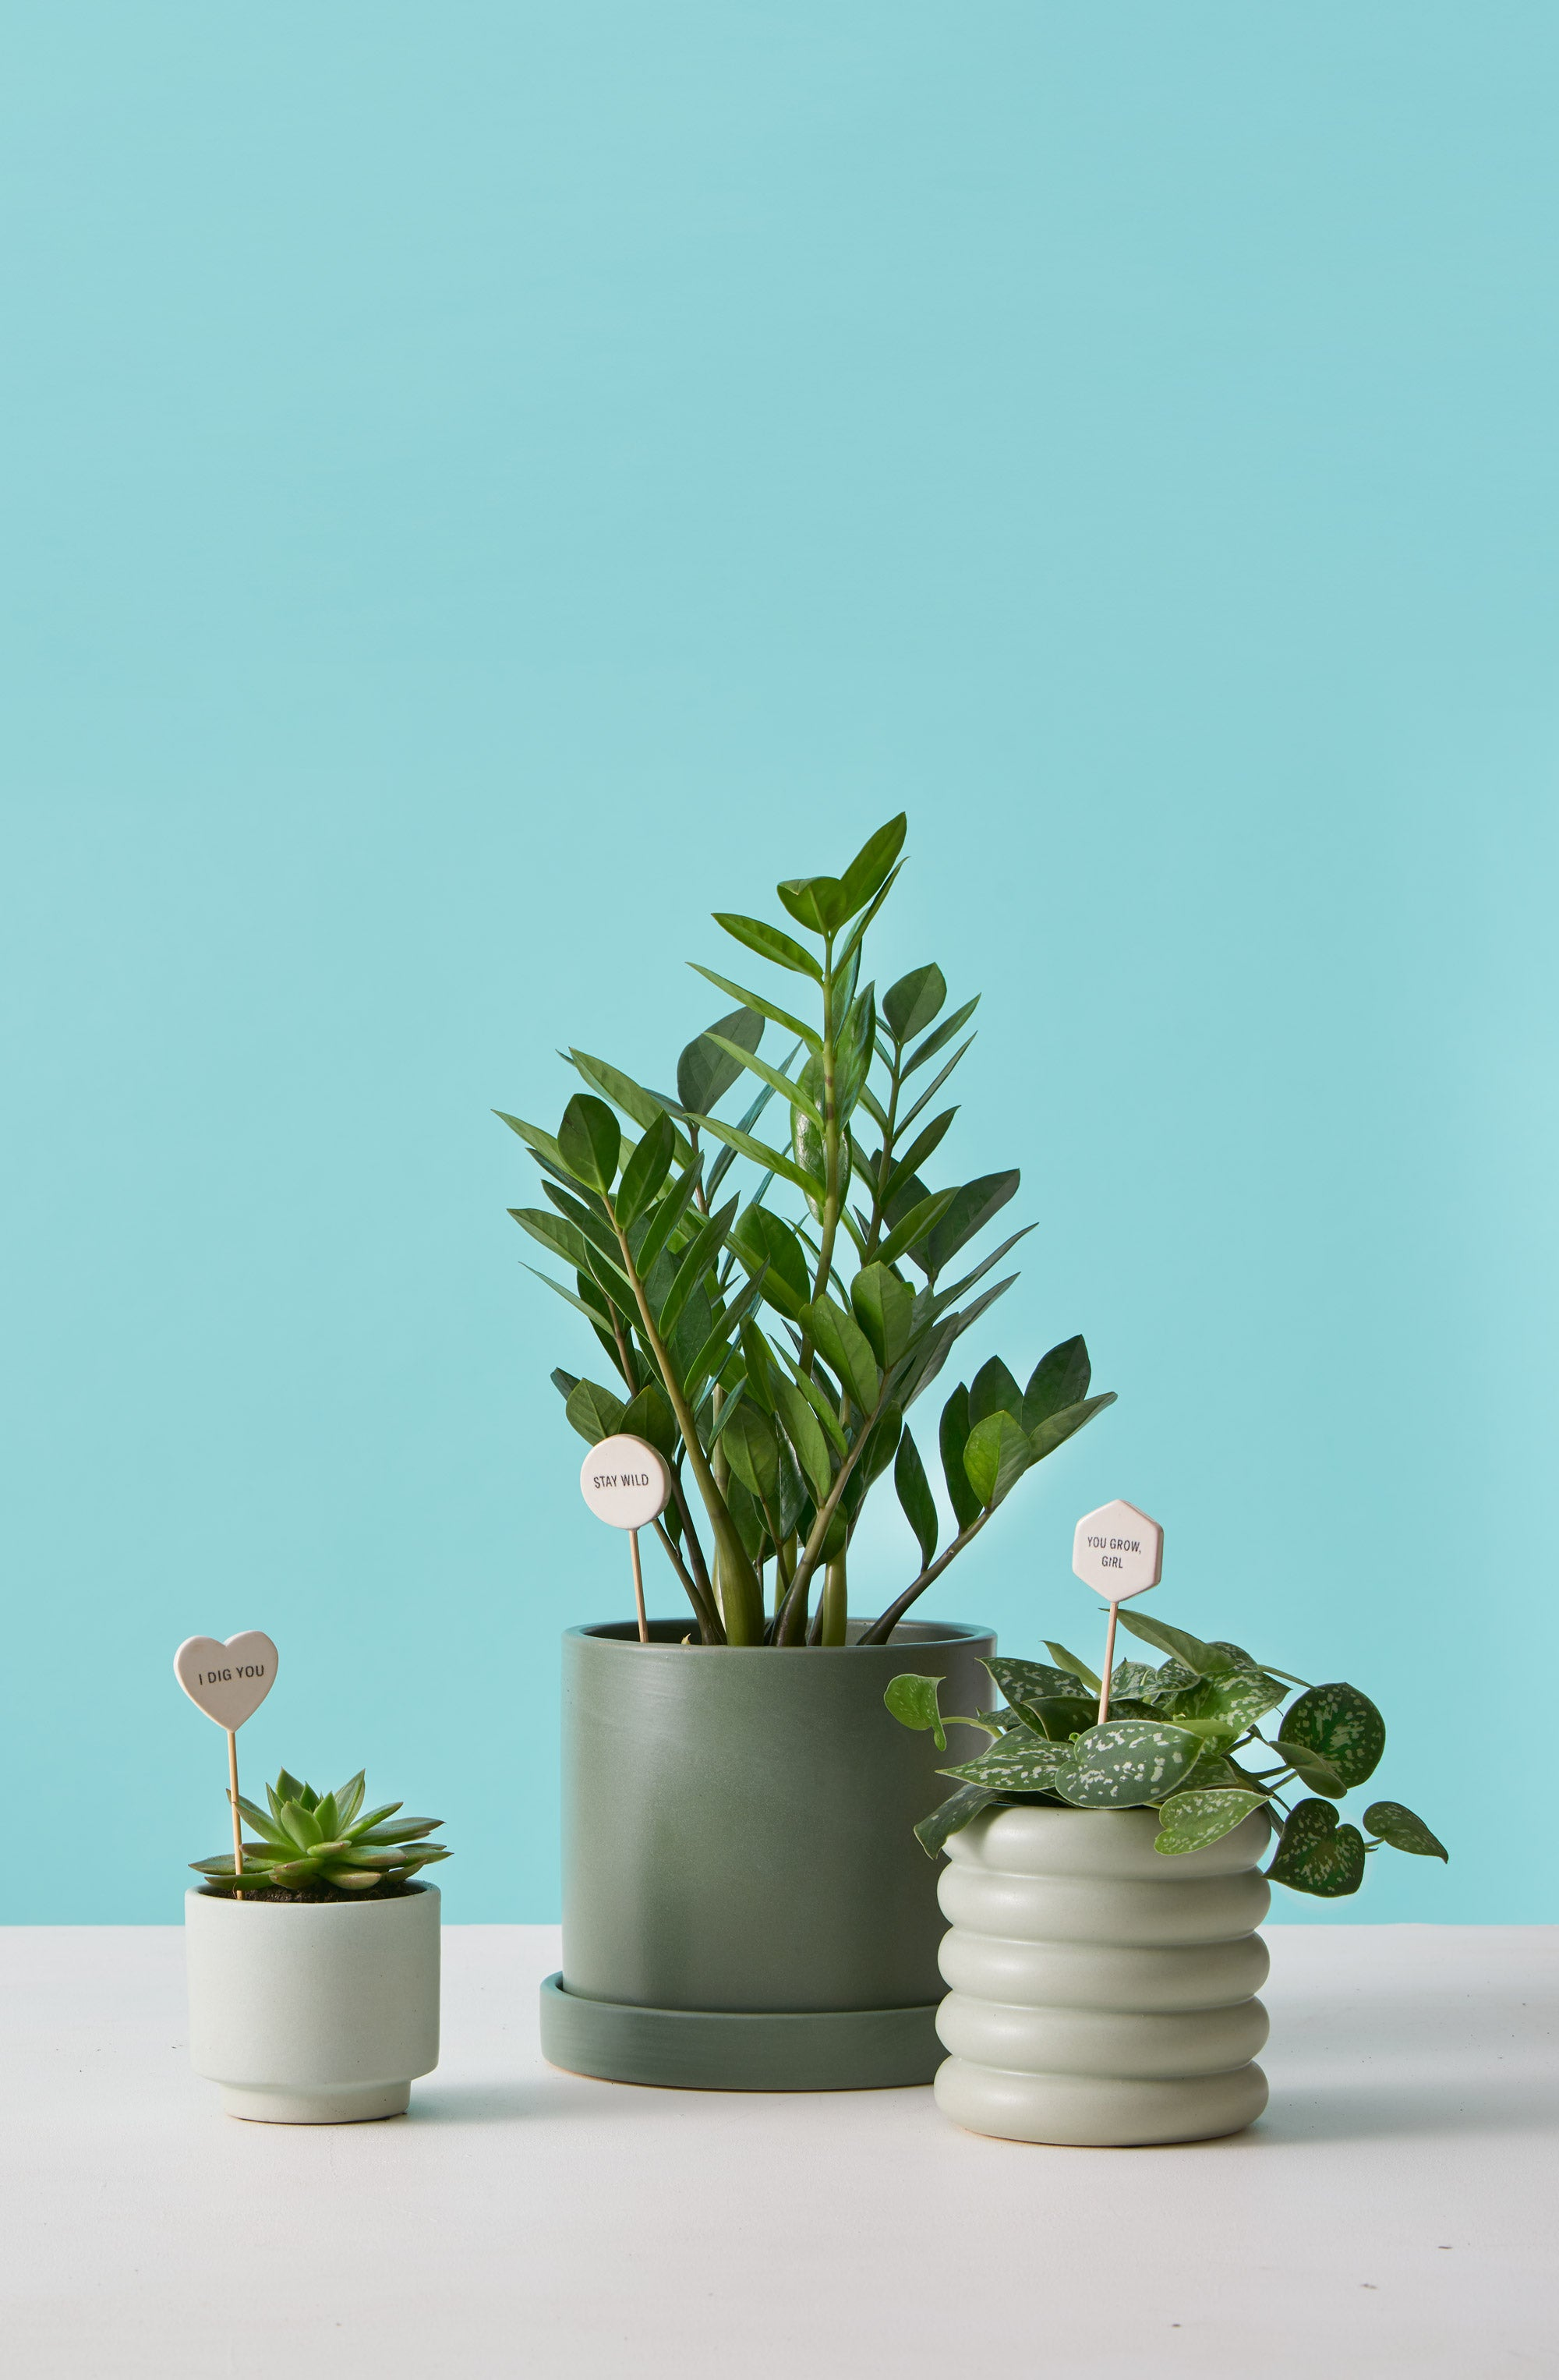 Indoor Potted Plants Delivered to Your Door – The Sill on simple tiny houses, sizes of tiny houses, views of tiny houses, examples of tiny houses, earth tiny houses, home tiny houses, types of big houses, manufacturers of tiny houses, some tiny houses, styles of tiny houses, models of tiny houses, dimensions of tiny houses, benefits of tiny houses, multiple tiny houses, costs of tiny houses,